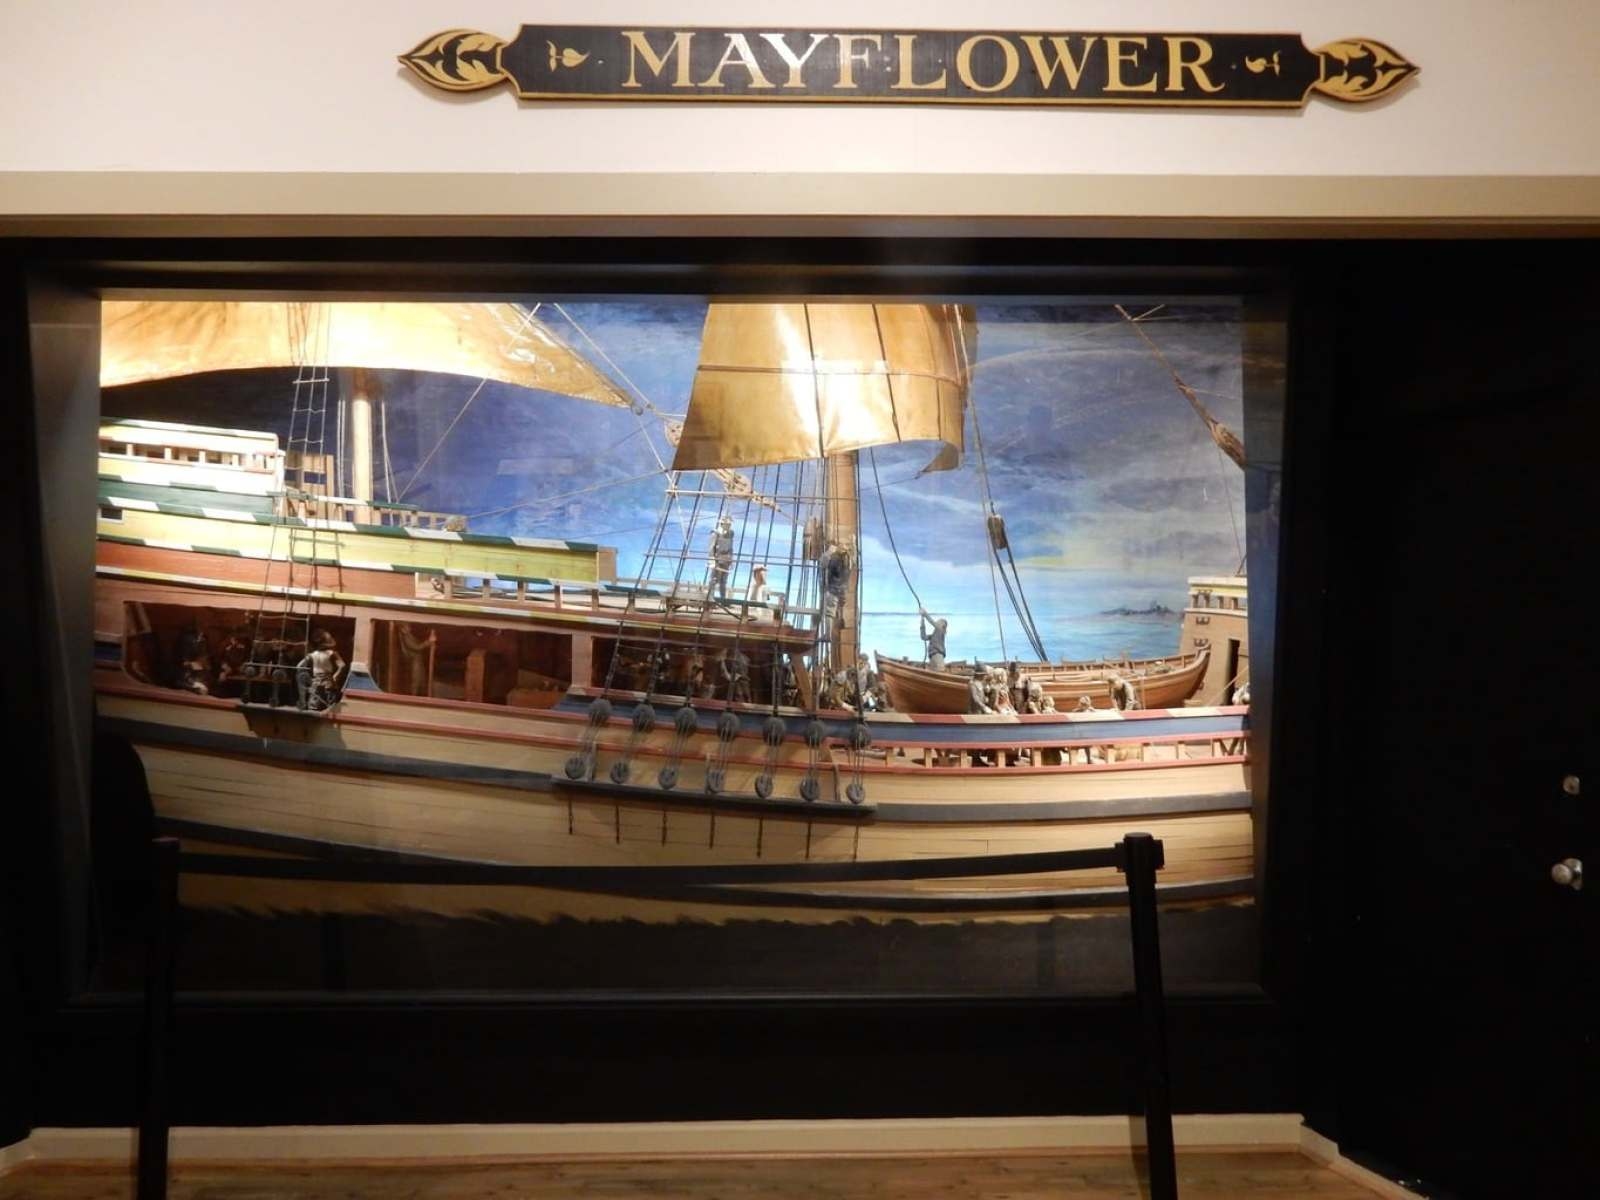 Mayflower Room, Provincetown Museum, MA